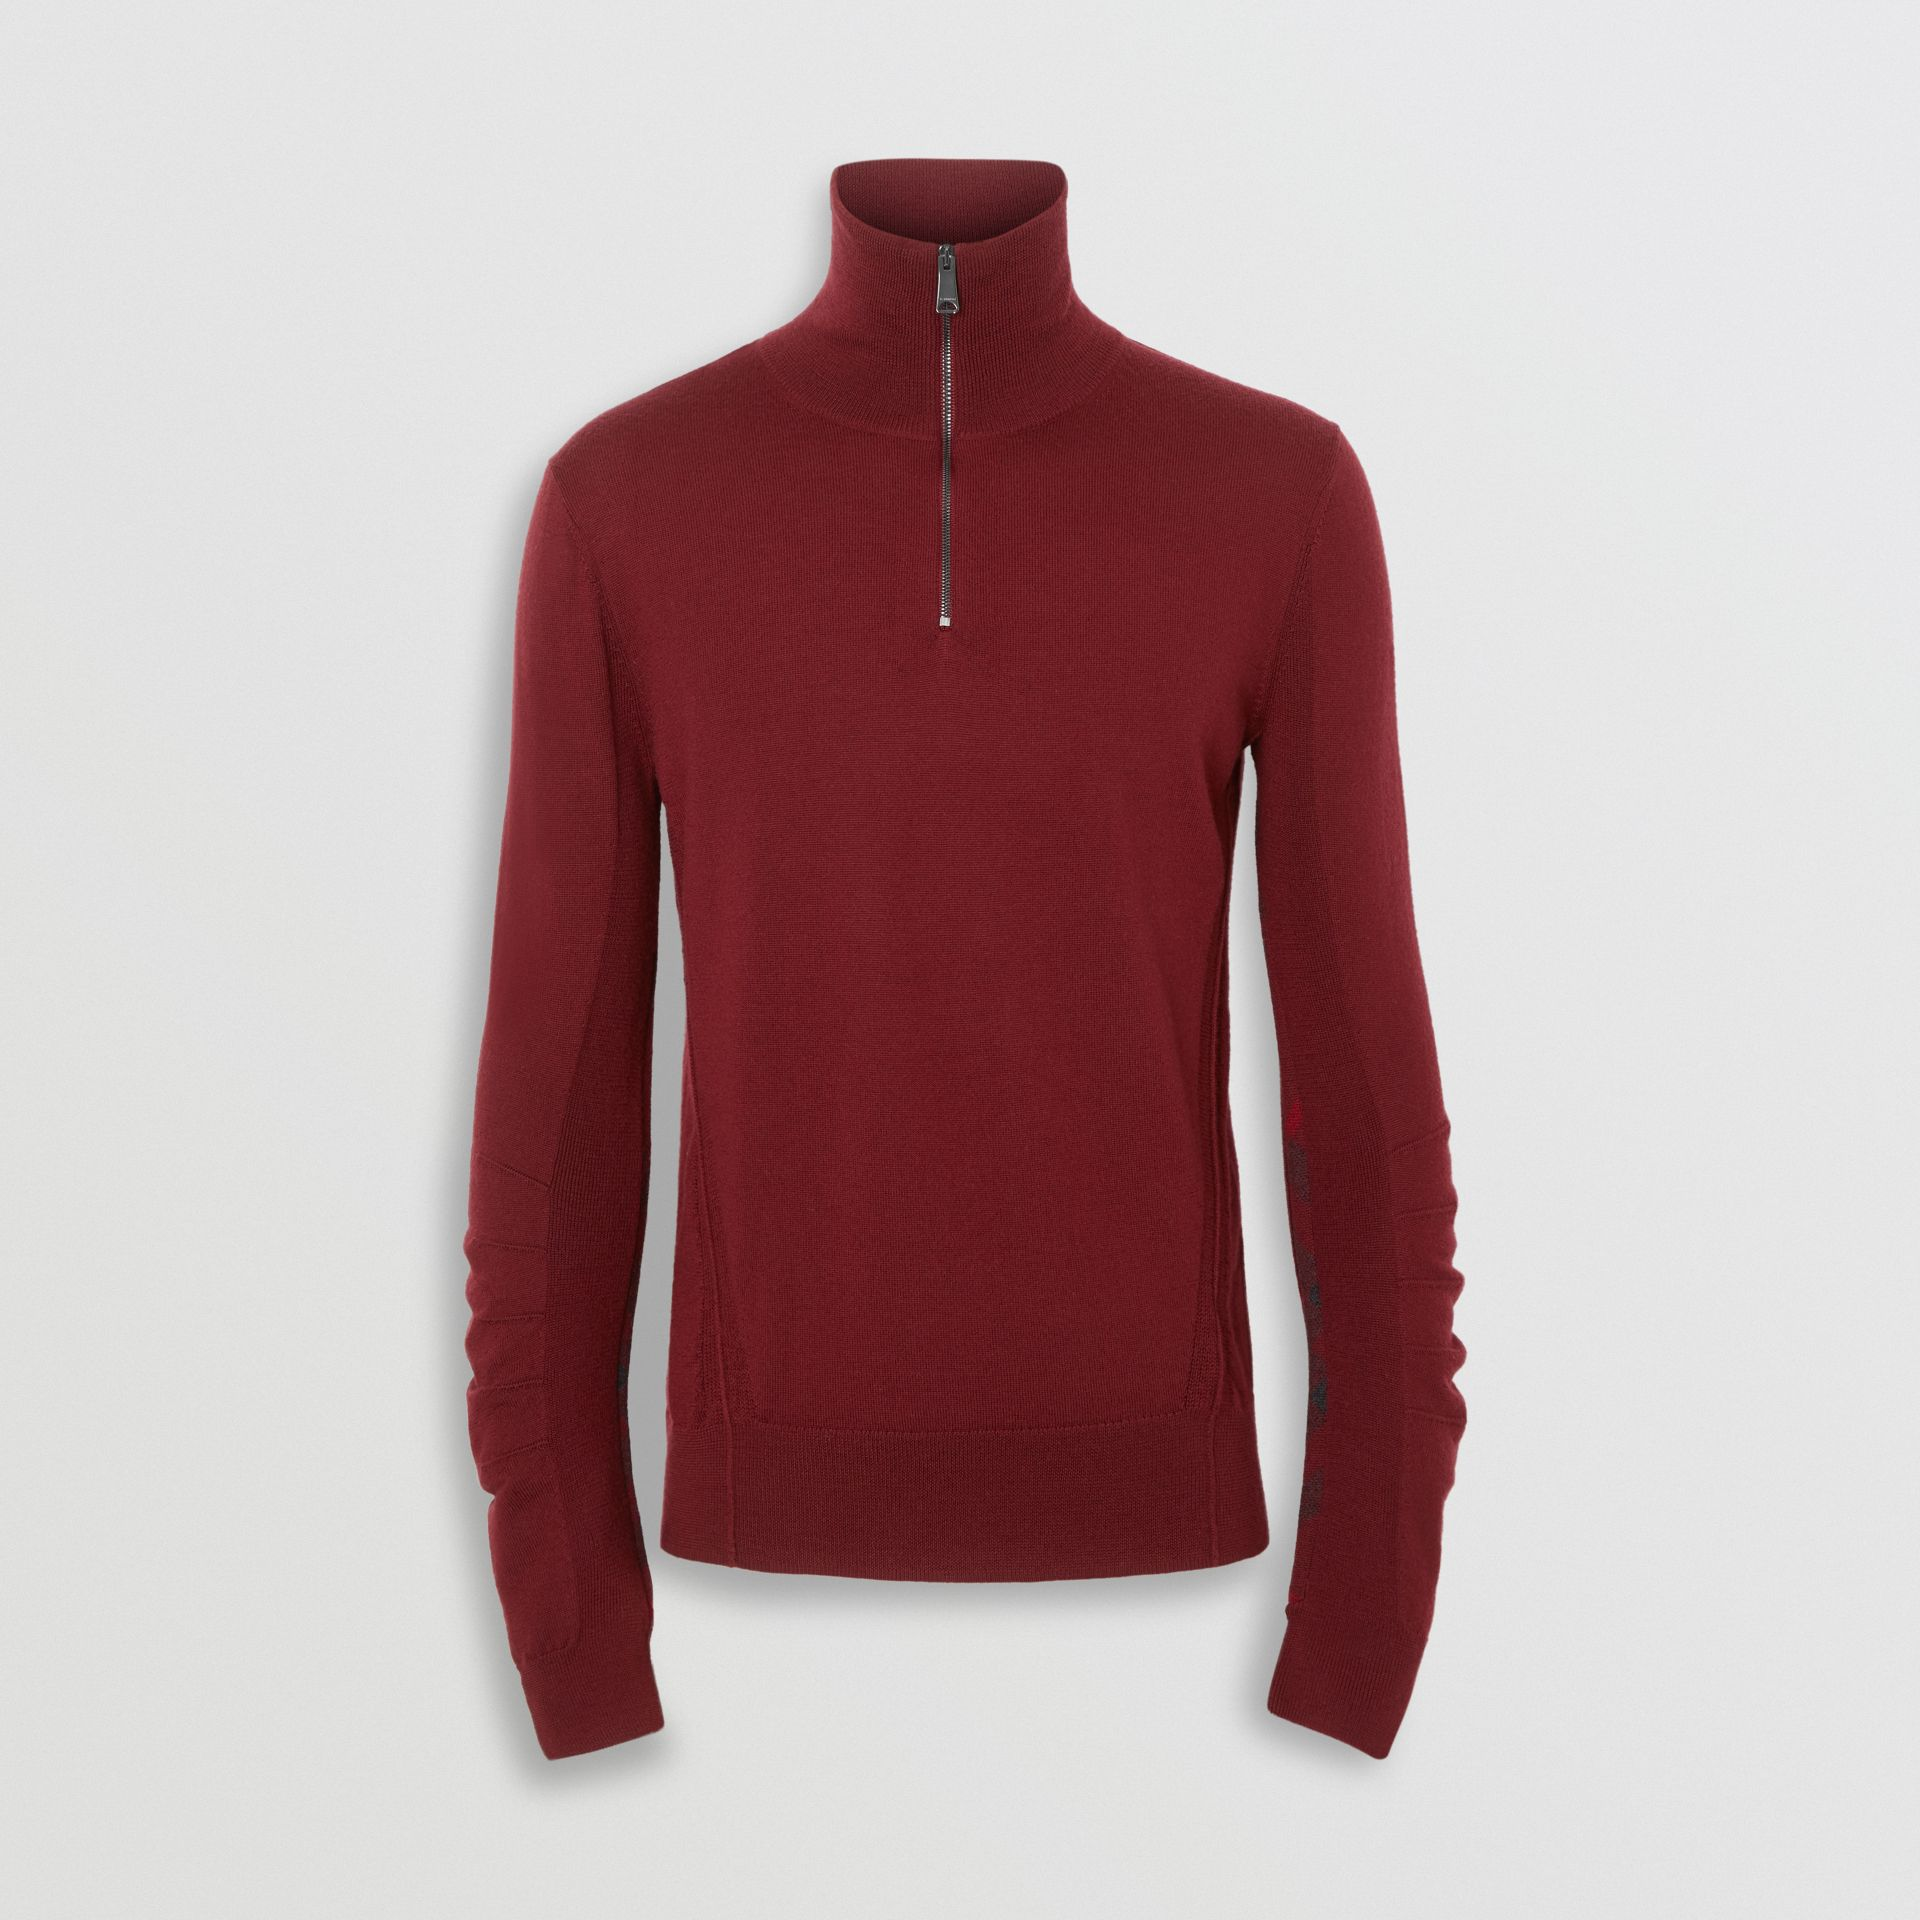 Merino Wool Half-zip Sweater in Burgundy - Men | Burberry Canada - gallery image 3